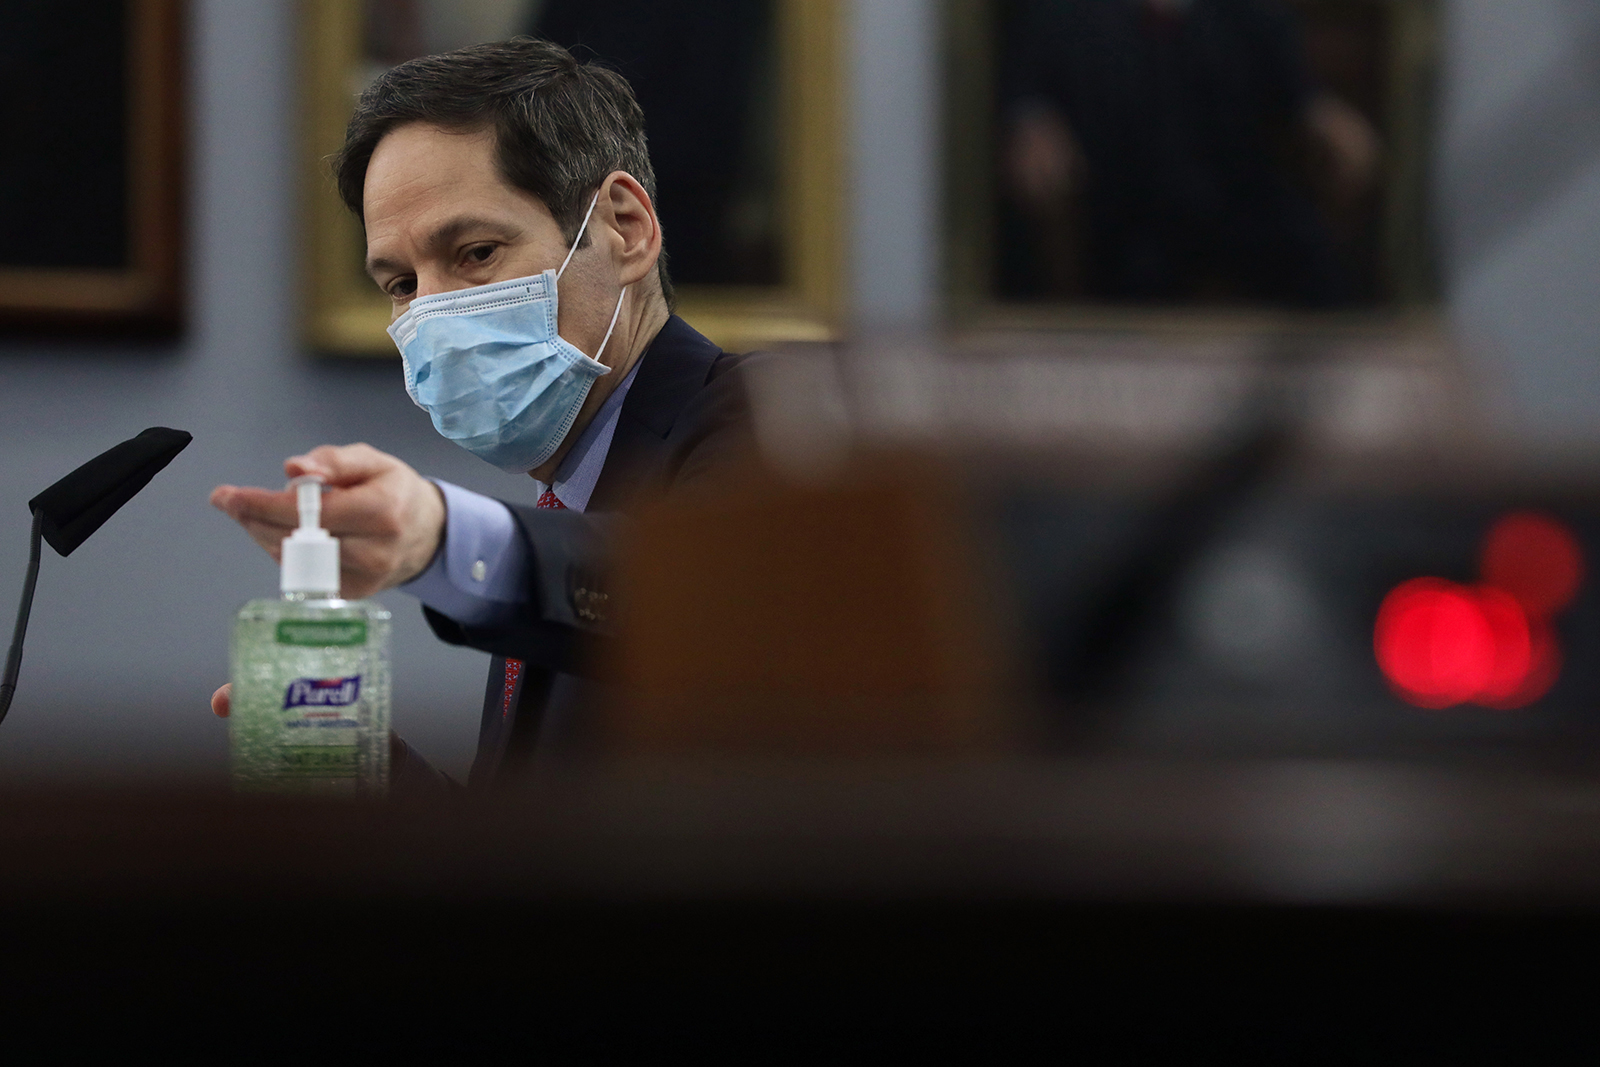 Former Director of the Centers for Disease Control and Prevention Dr. Tom Frieden.